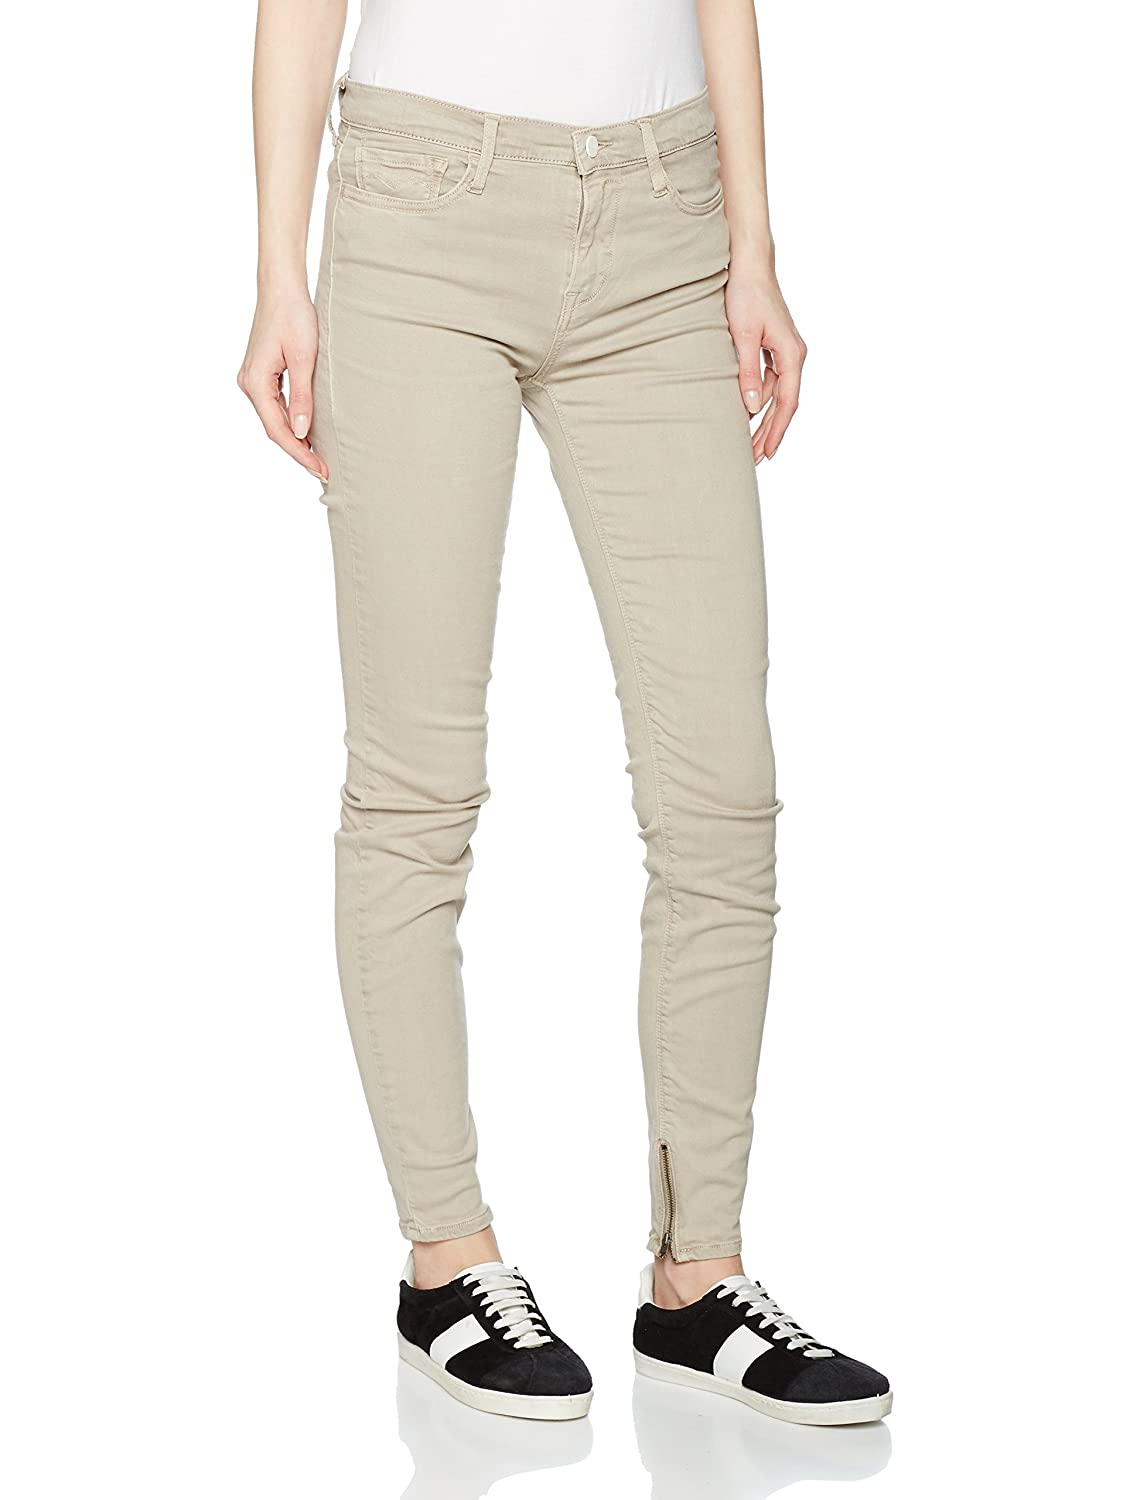 TALLA 24W / 28L. Replay Joi Ankle Zip, Jeans Mujer